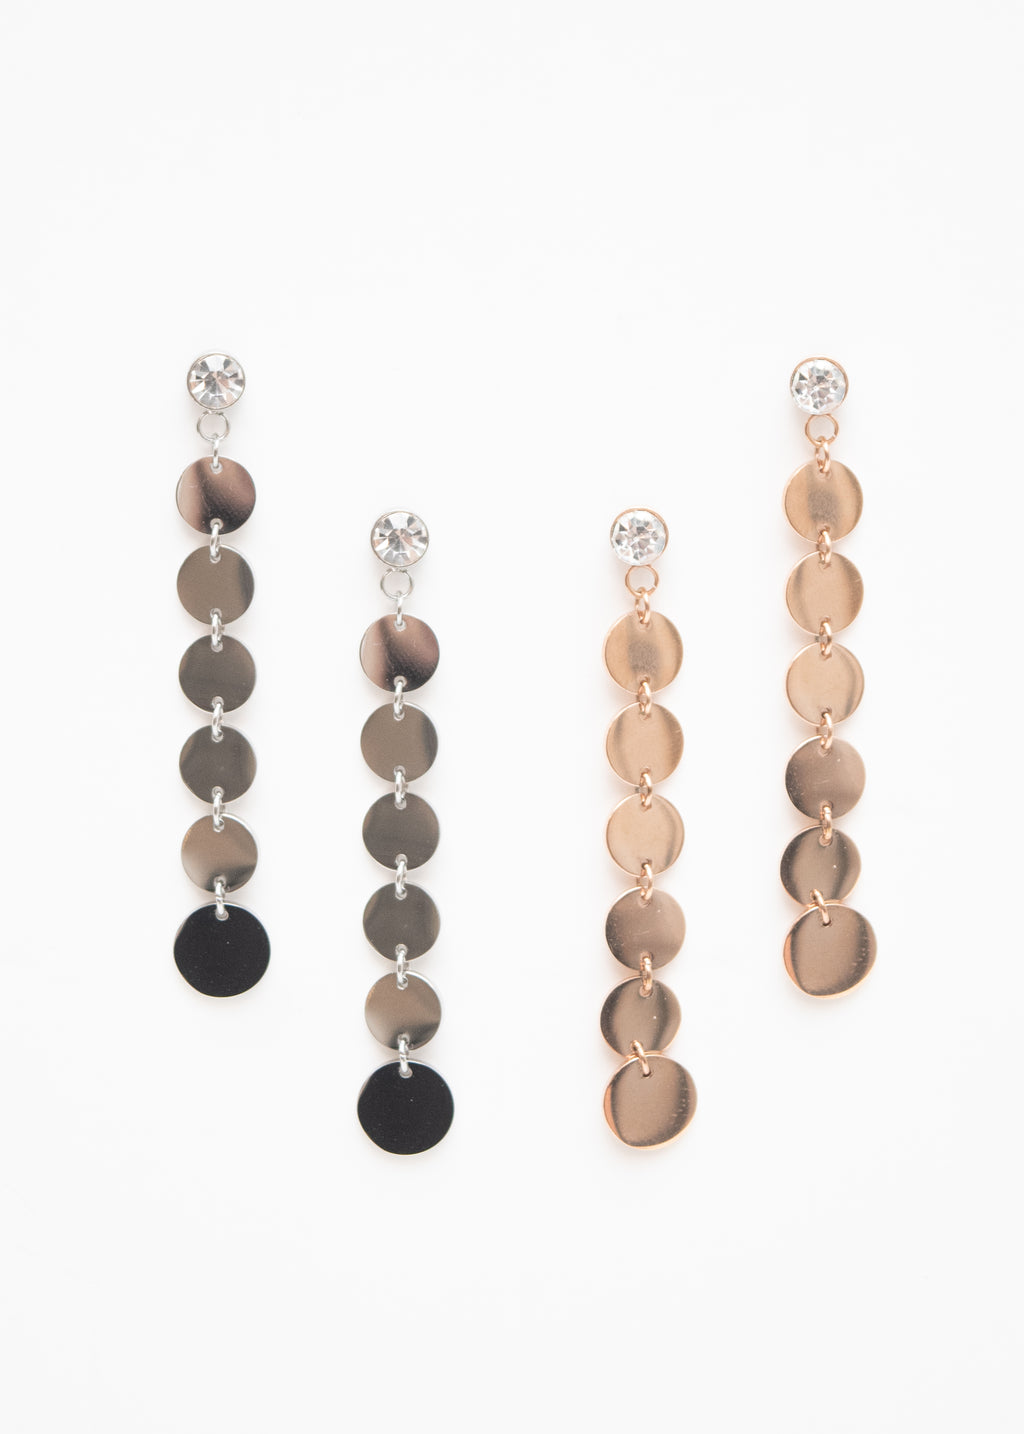 Beck & Boosh Rhinestone Scales Earrings Rhinestones attached to cascading circles in silver and rose gold stainless steel